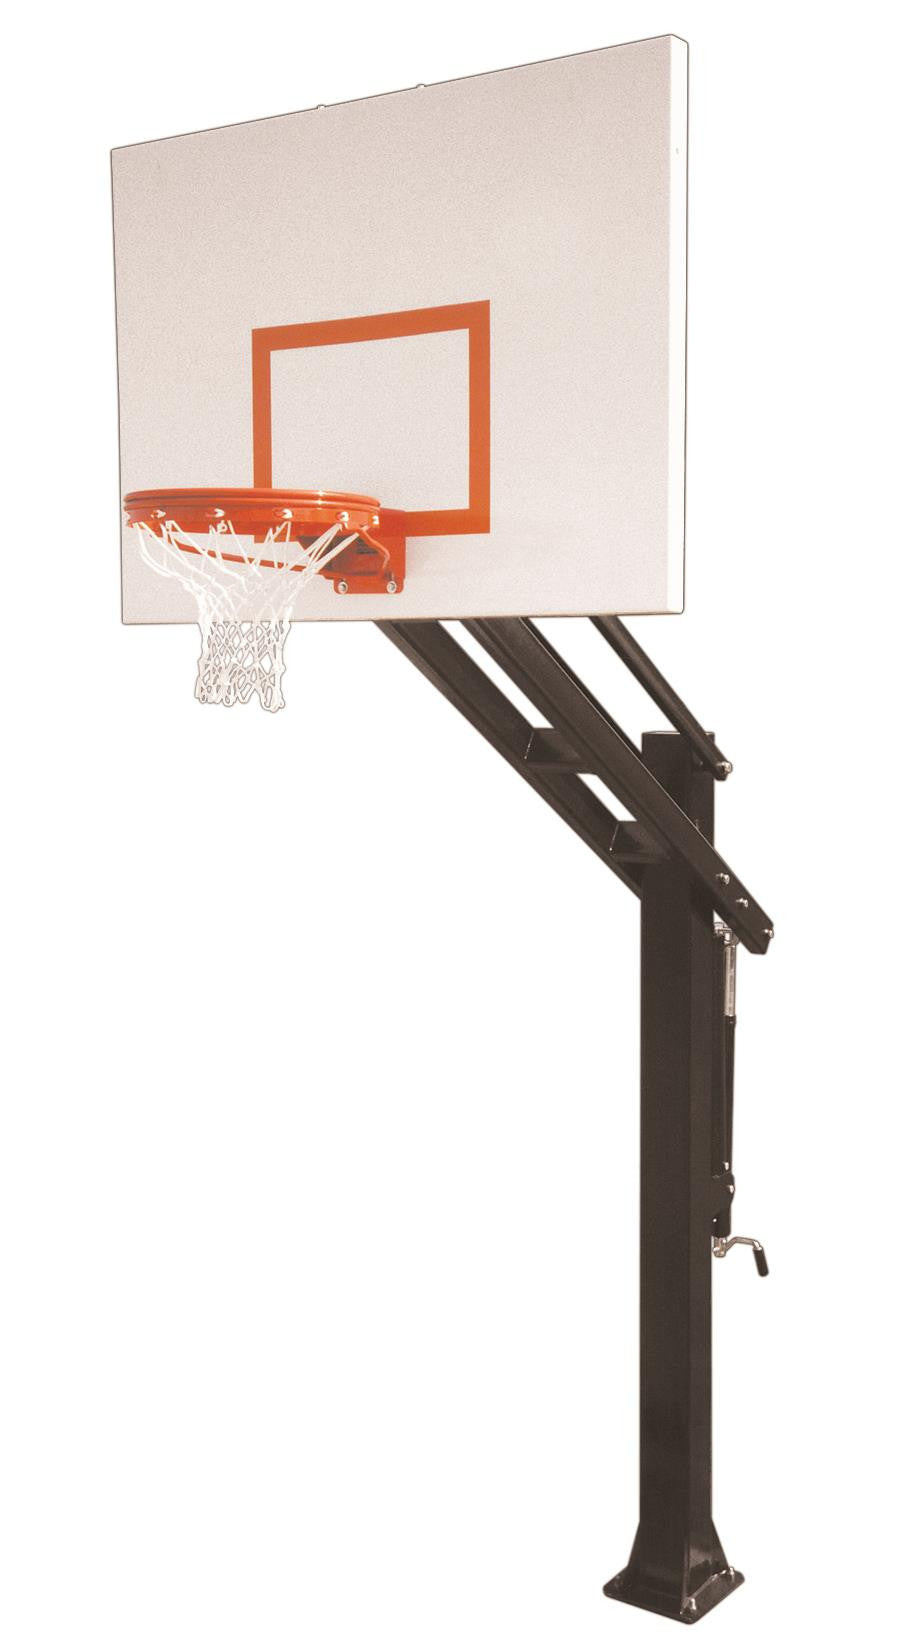 First Team Titan Playground In Ground Outdoor Adjustable Basketball Hoop 60 inch Steel